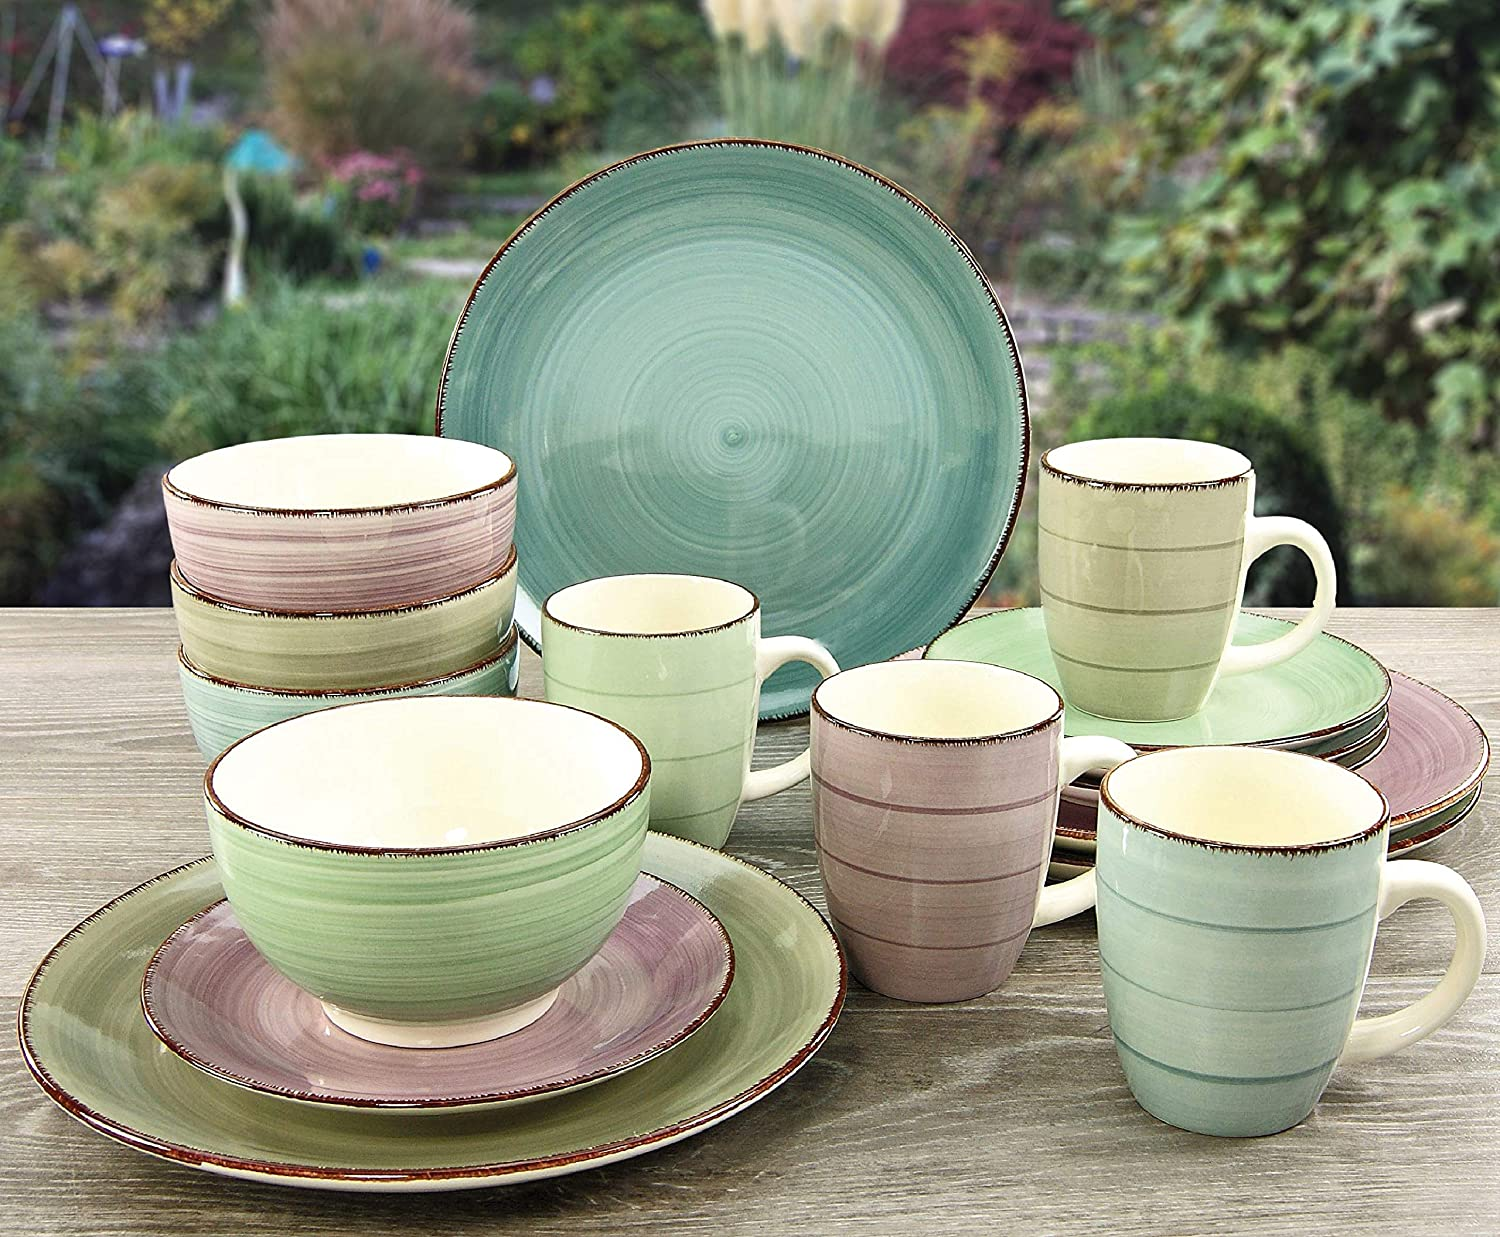 Creatable Lavergne 16 Piece Dinnerware Set Stoneware Service For 4 Multicolored Ebay